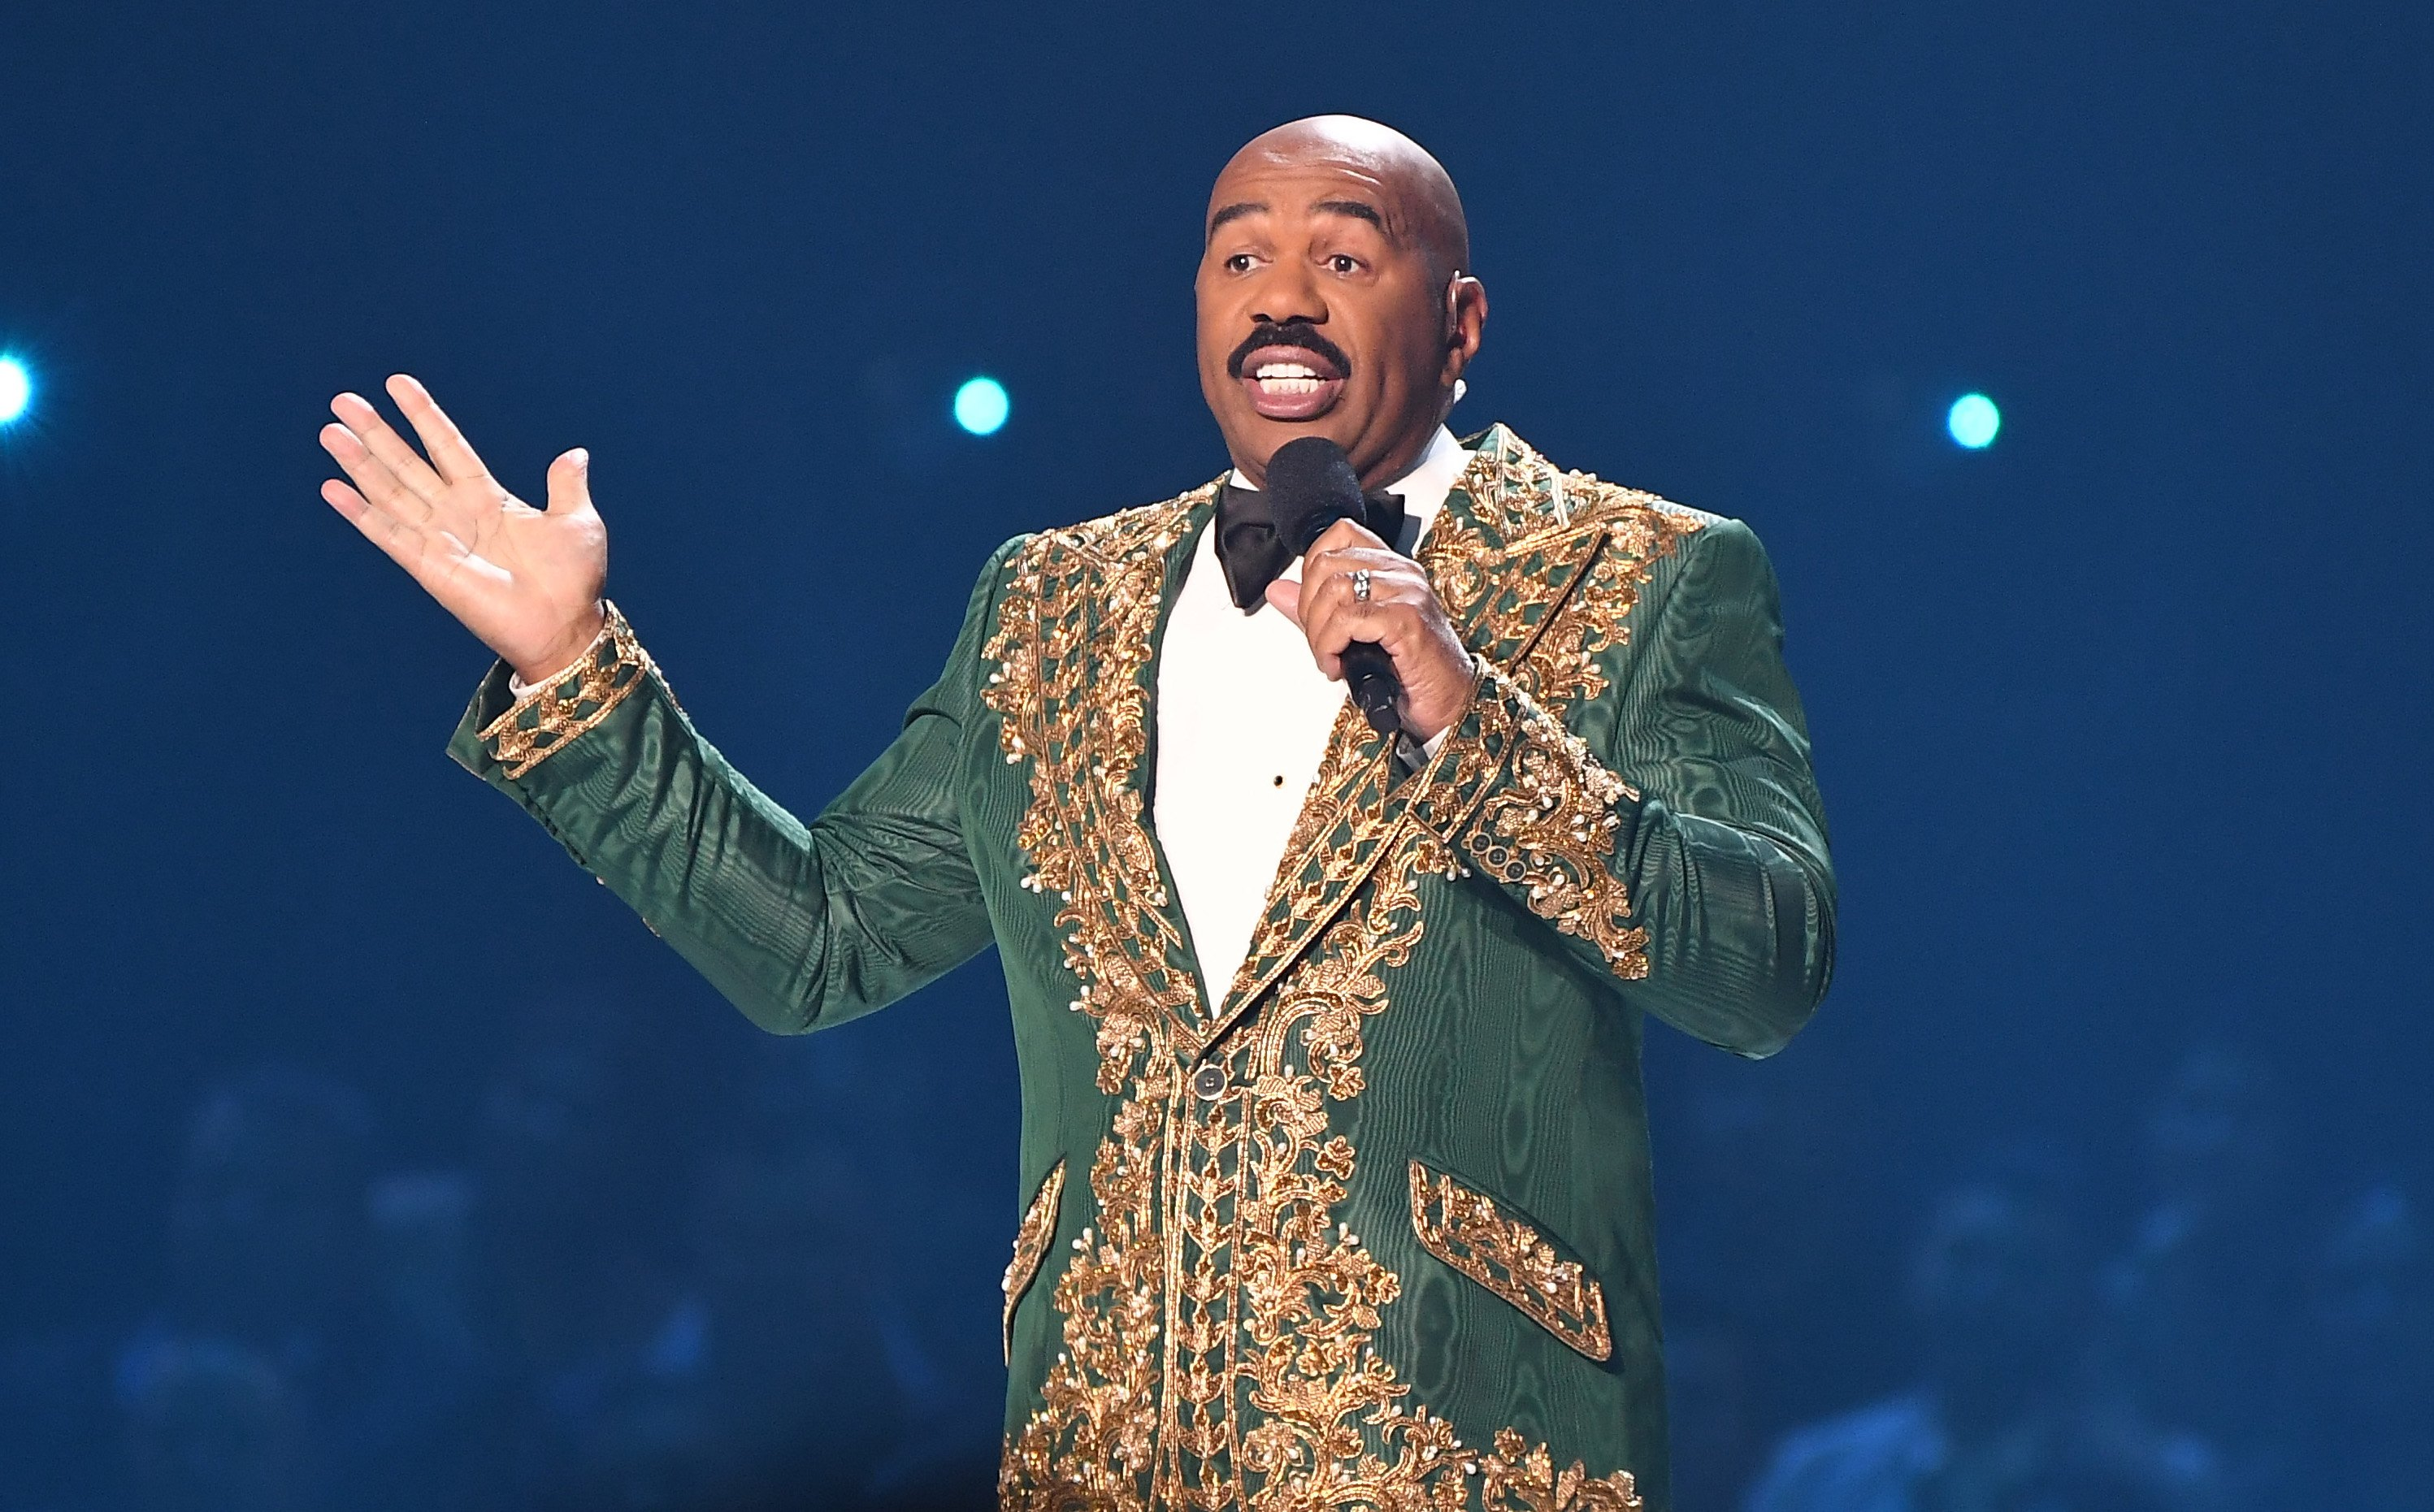 Steve Harvey speaking at the 2019 Miss Universe Pageant at Tyler Perry Studios on December 08, 2019 in Atlanta, Georgia.|Source: Getty Images